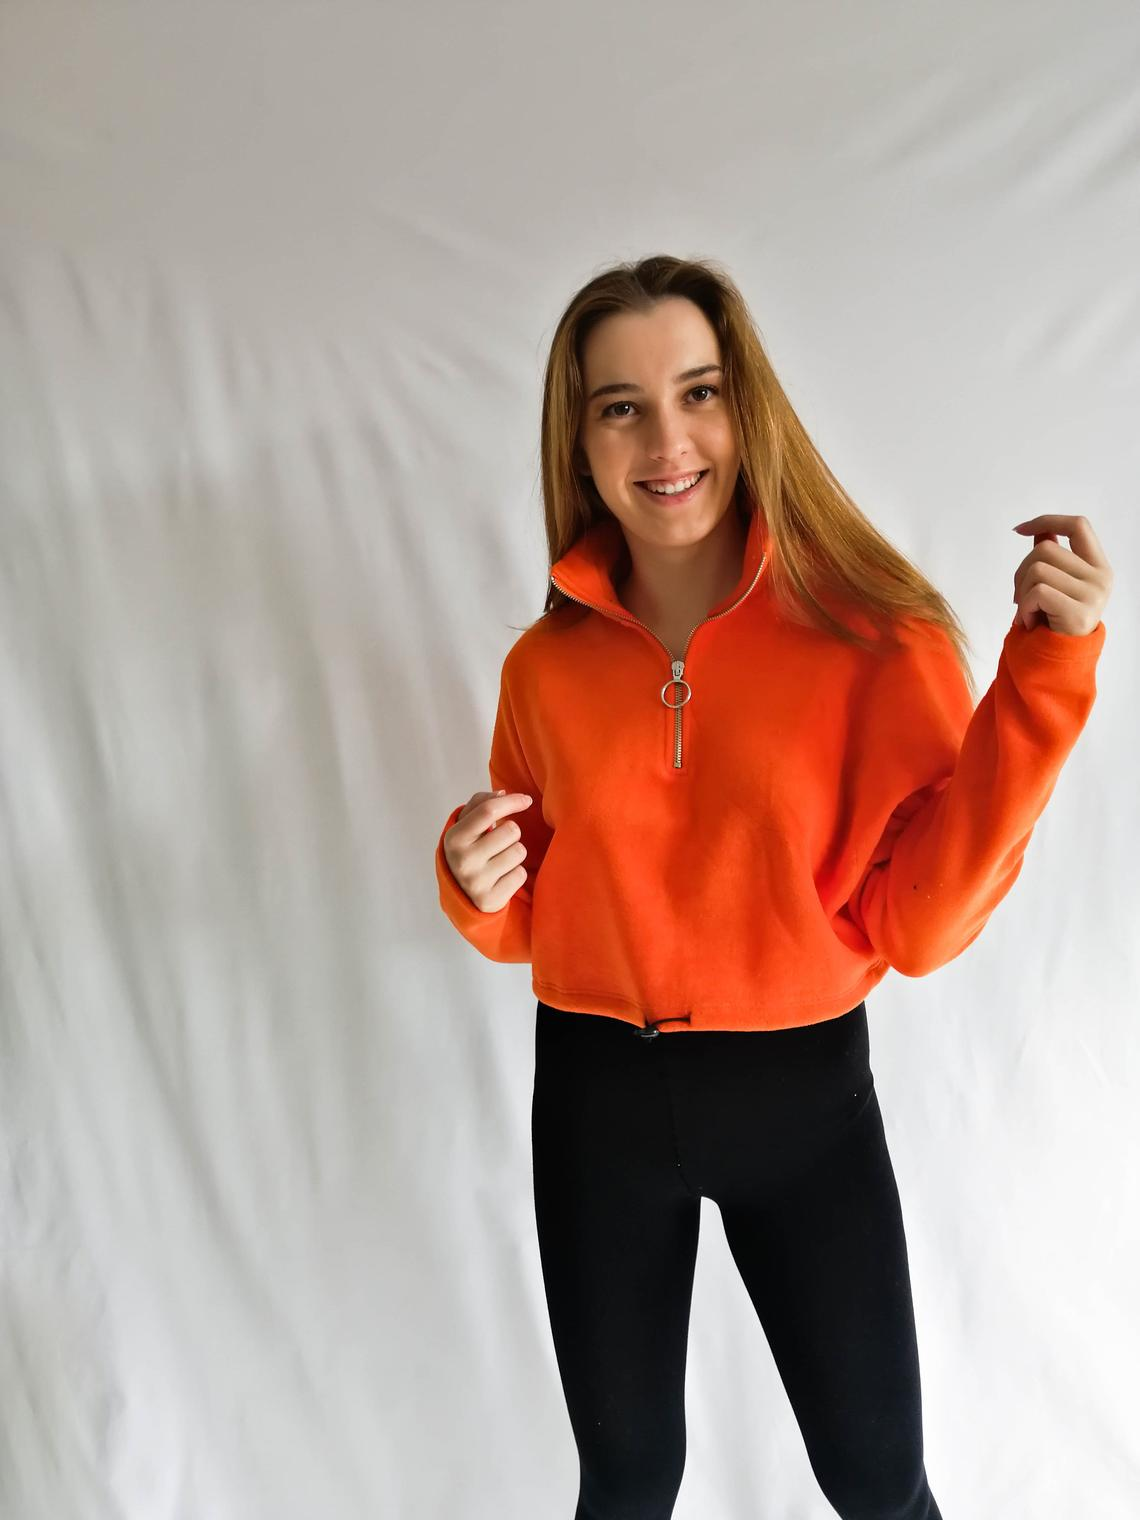 Turtleneck Orange Crop Sweatshirt | Long Sleeve Sweatshirt | Polar Crop Sweat for Women | Top with no Hoodie